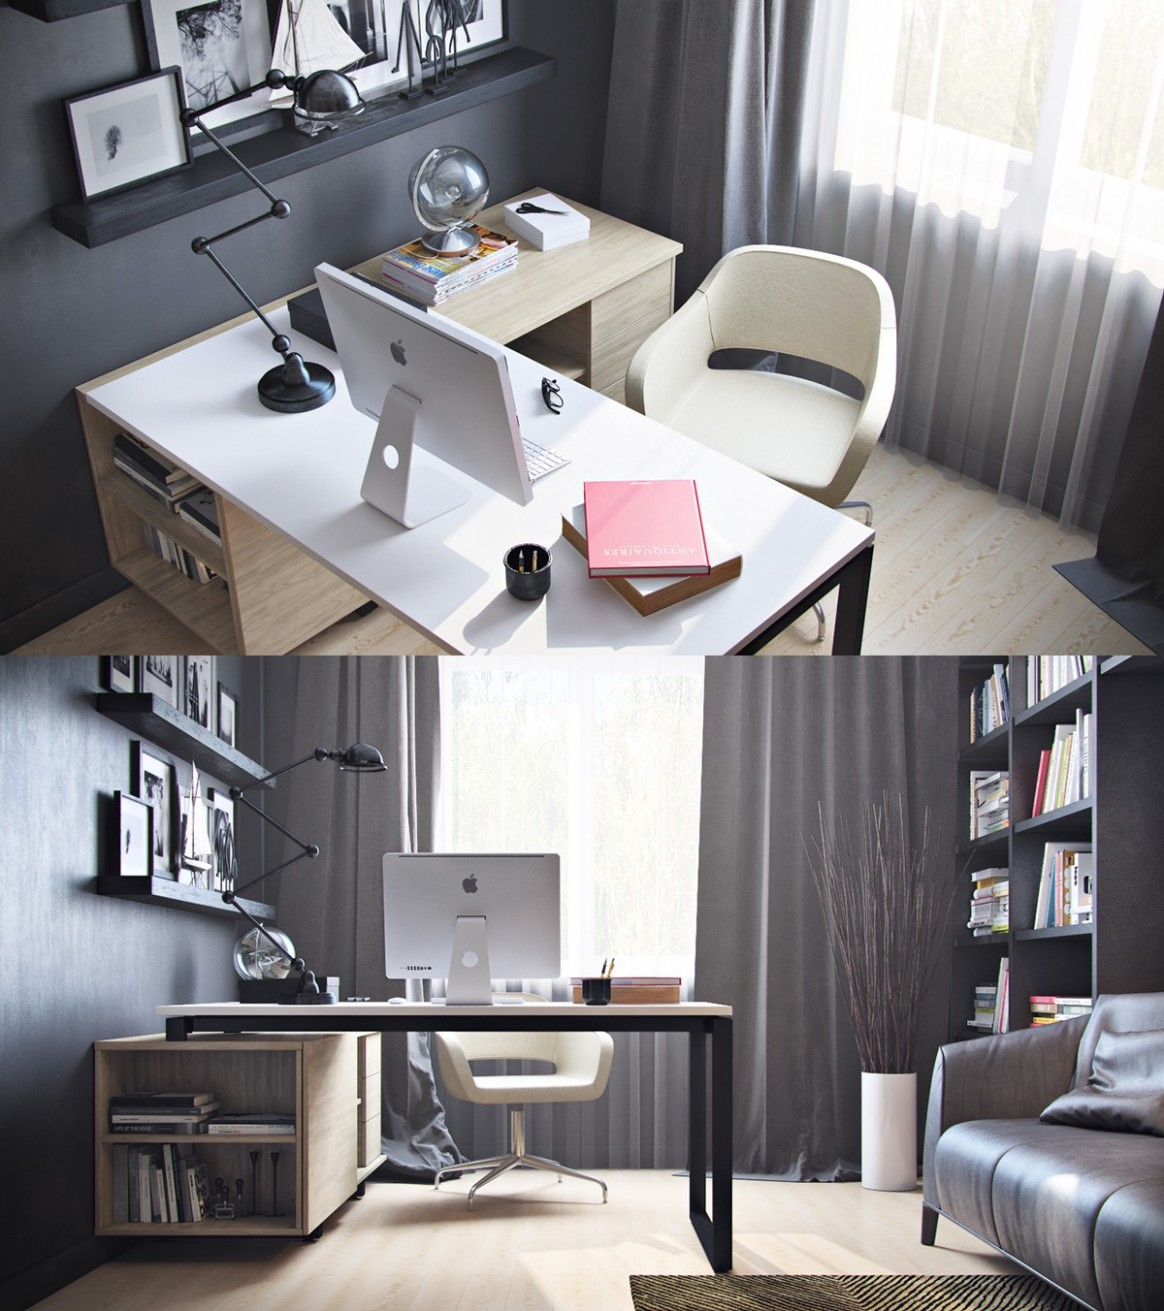 Unique L-shaped workspace desk ideas - Hupehome - Home Office Ideas With L Shaped Desk